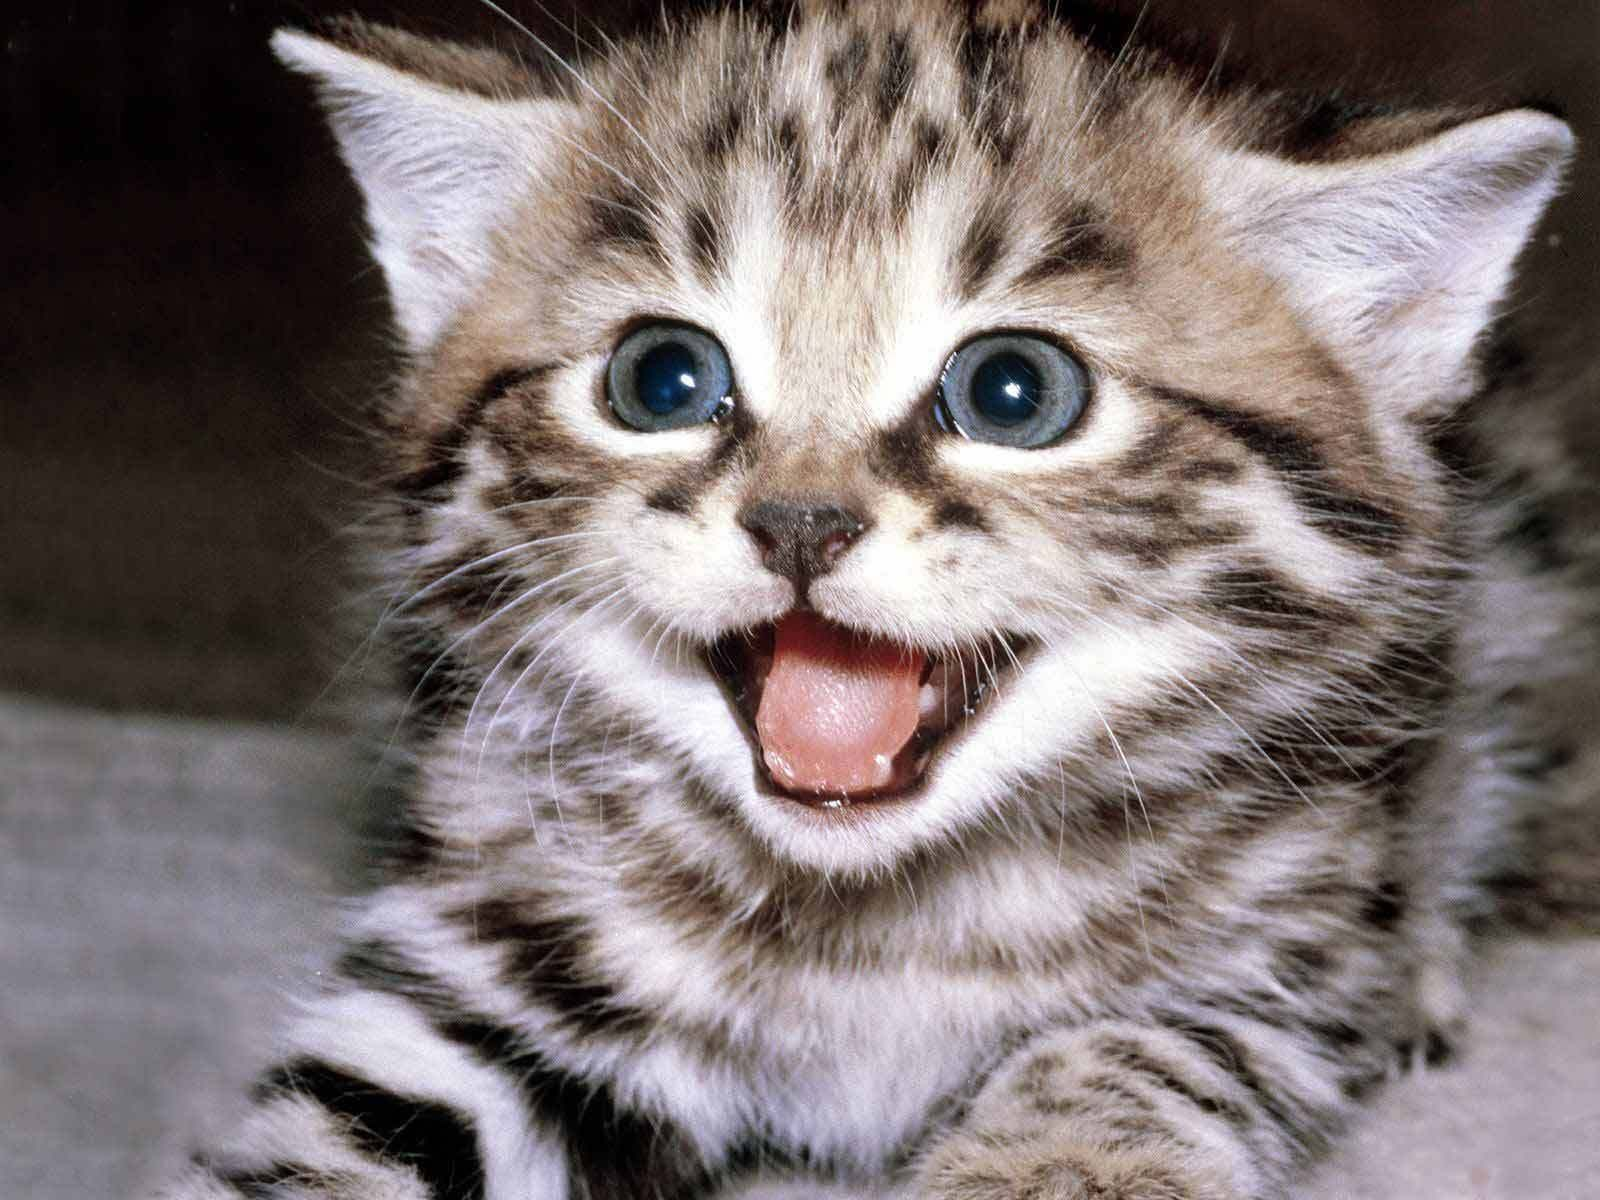 imgur the simple image sharer Happy kitten, Kittens